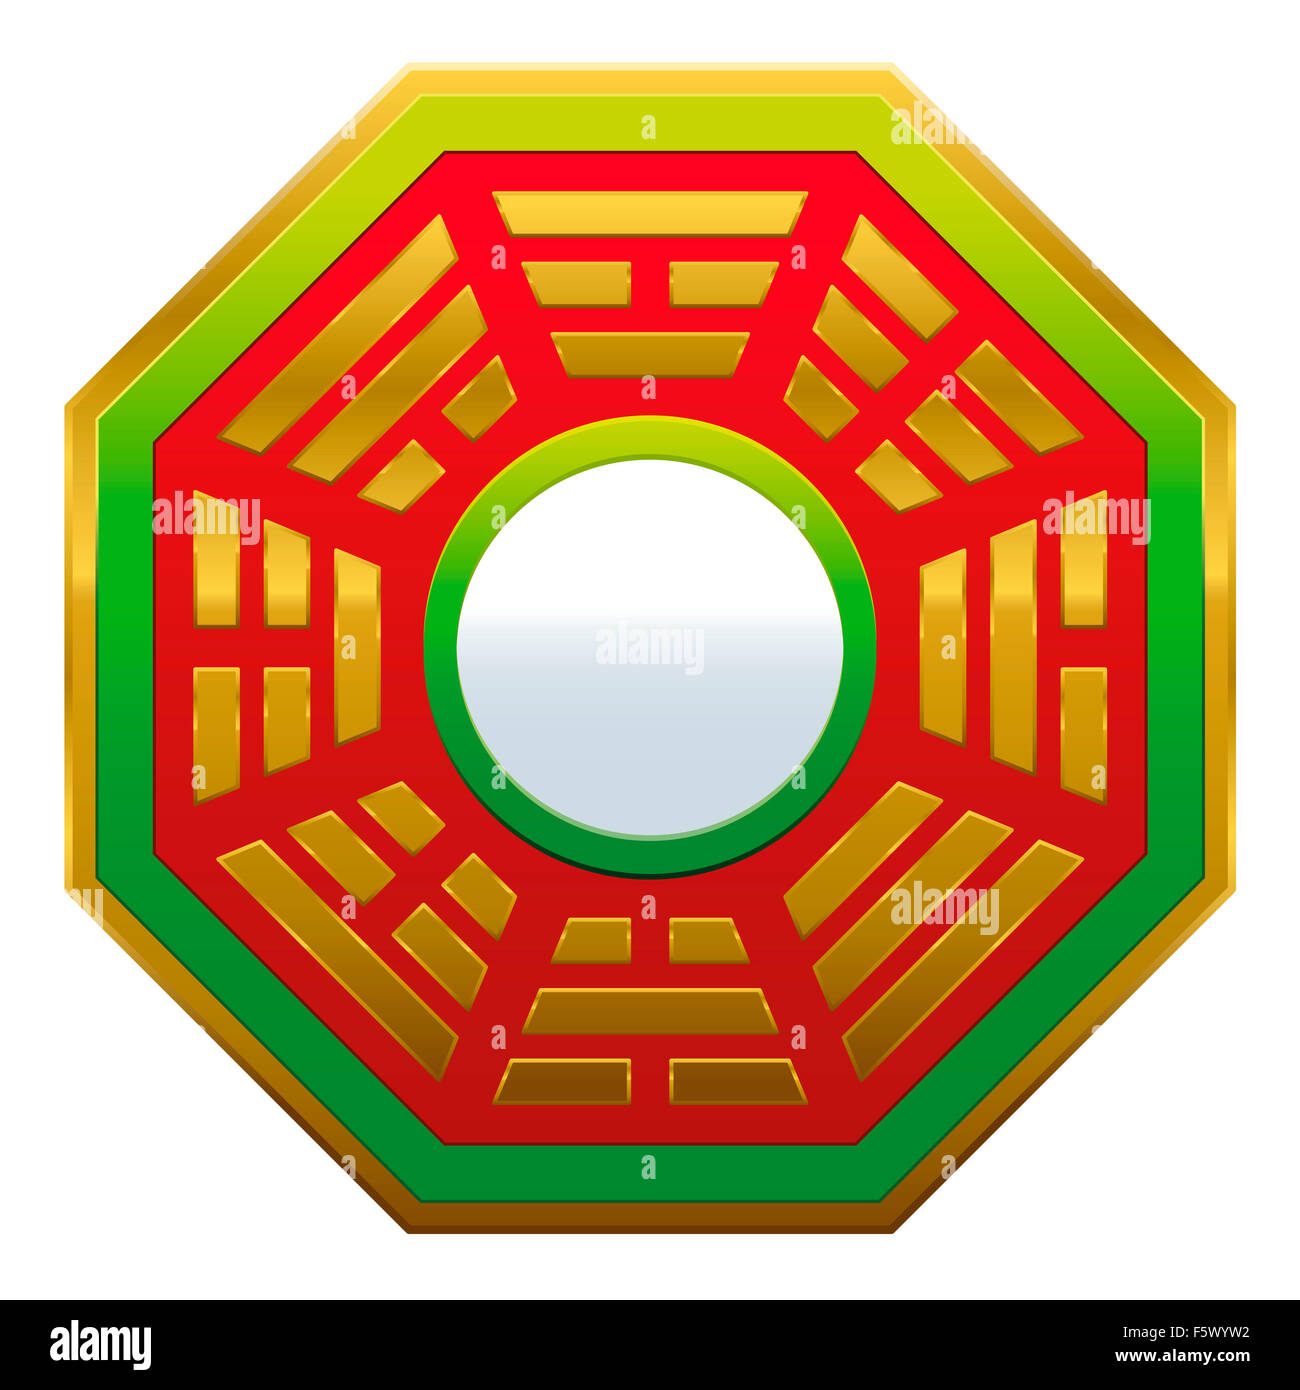 Classical Feng Shui Bagua Video Bagua Stock Photos Bagua Stock Images Alamy